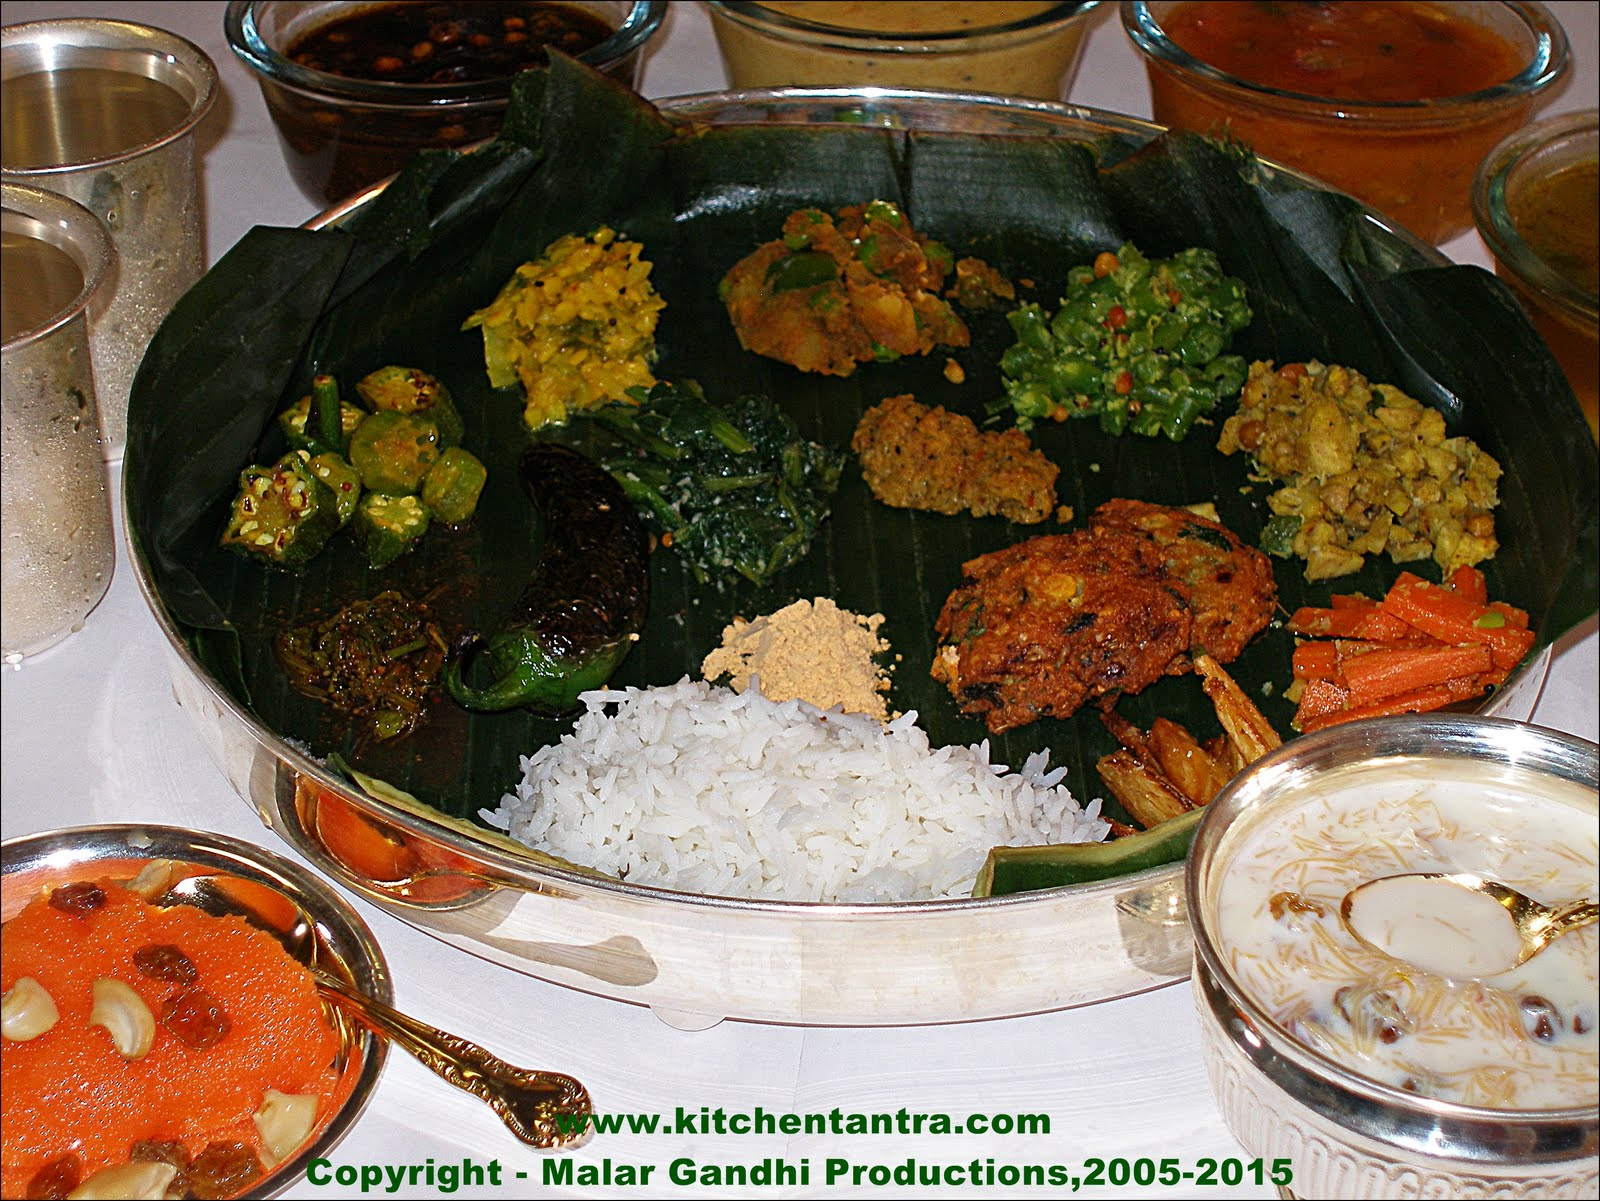 Tamizhar virundhu tamil nadu meals happy new year for Aharam traditional cuisine of tamil nadu